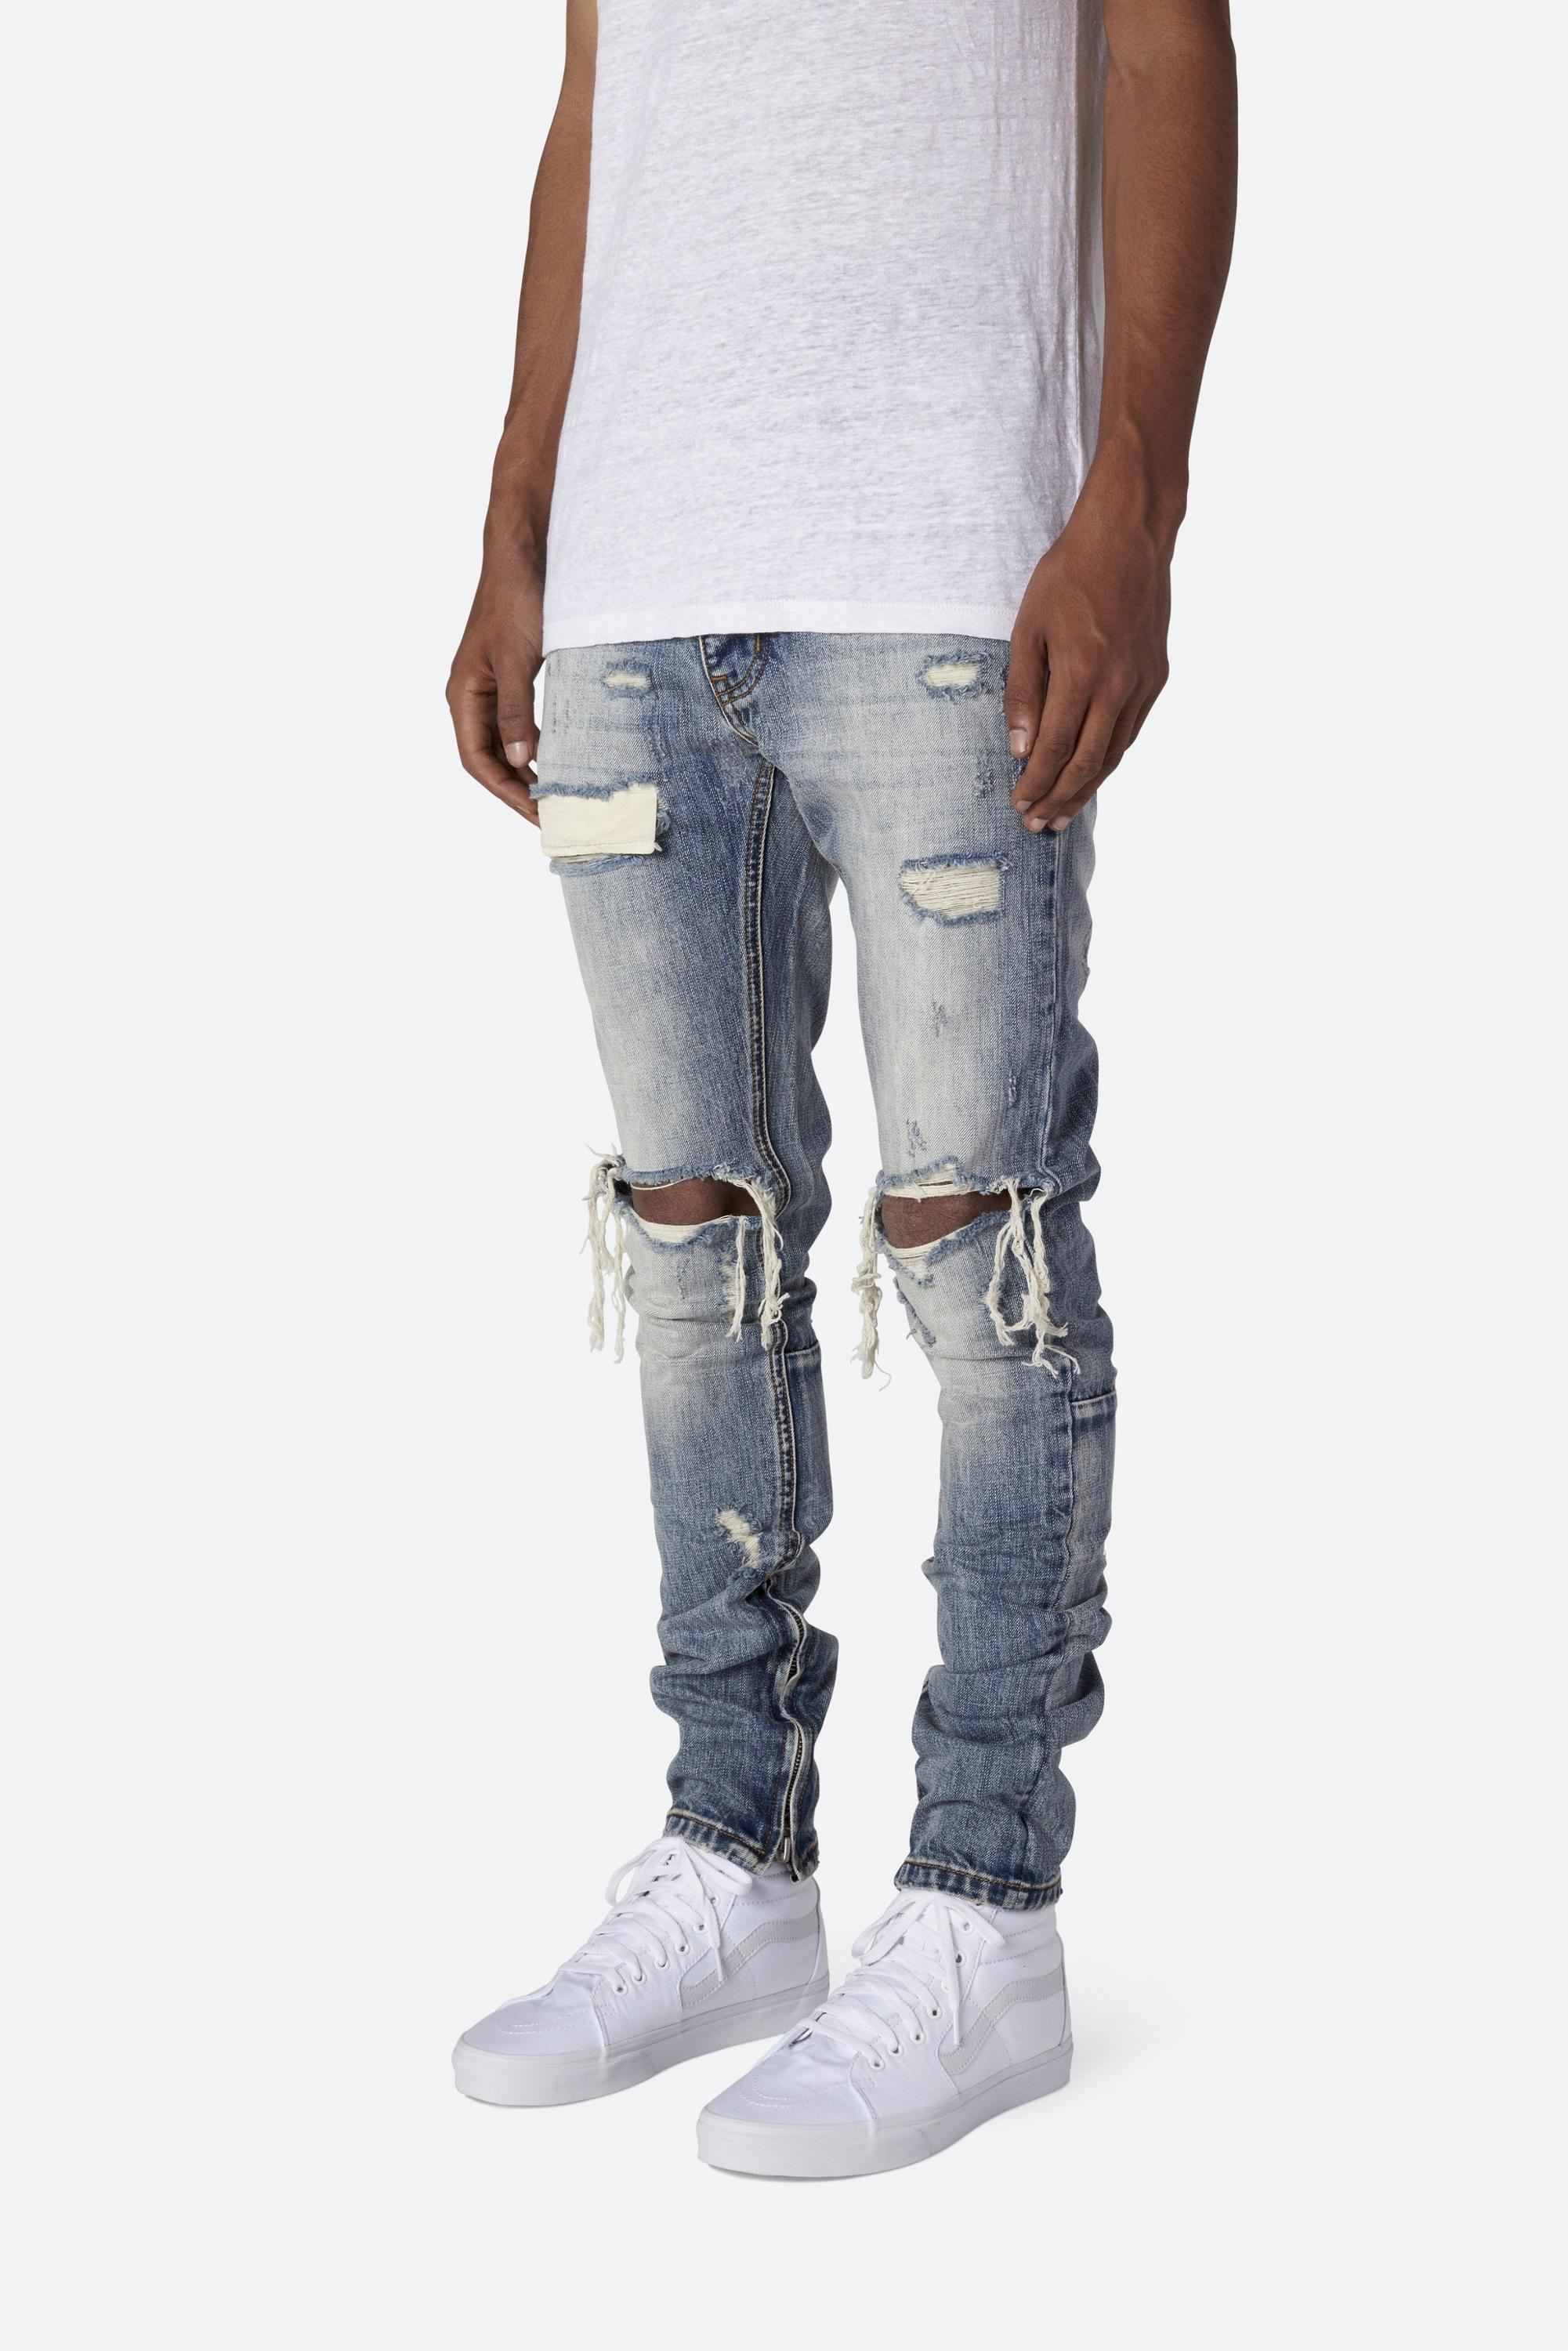 OEMnewmodel manufacturers china wholesale all branded name scratch pants price vintage ripped damaged distressed jeans denim 271